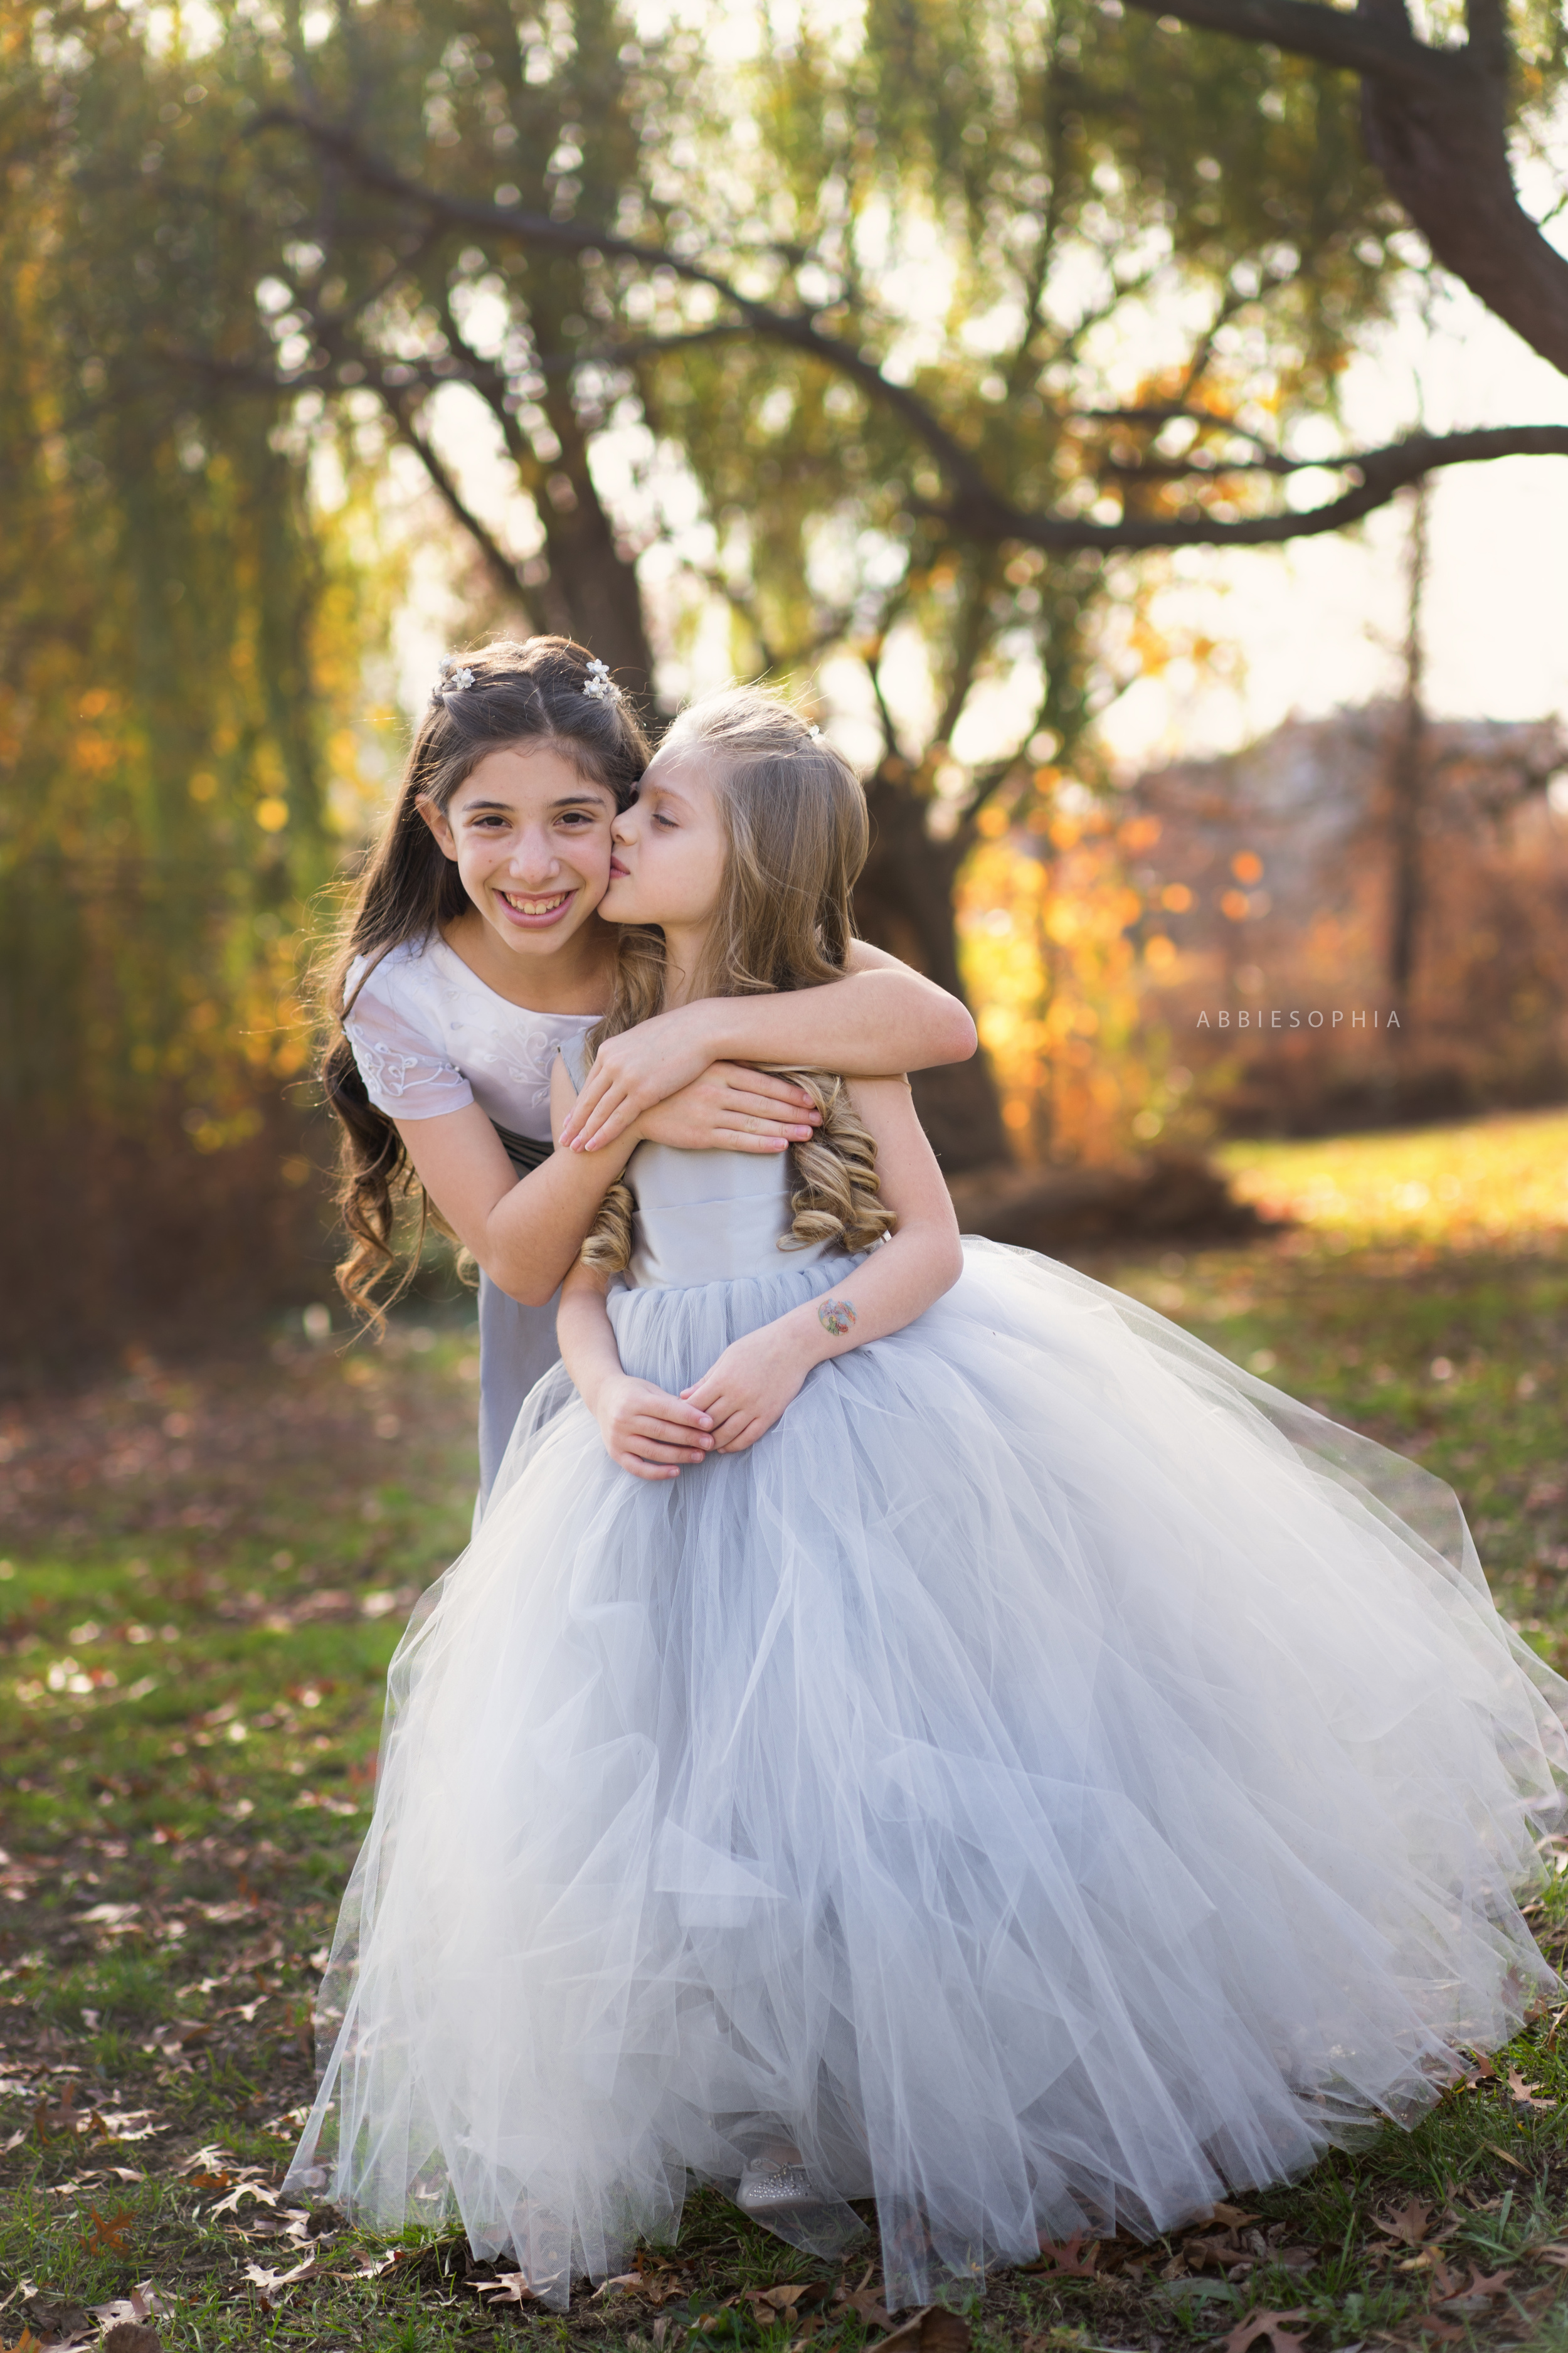 Family photos with a twist of tulle